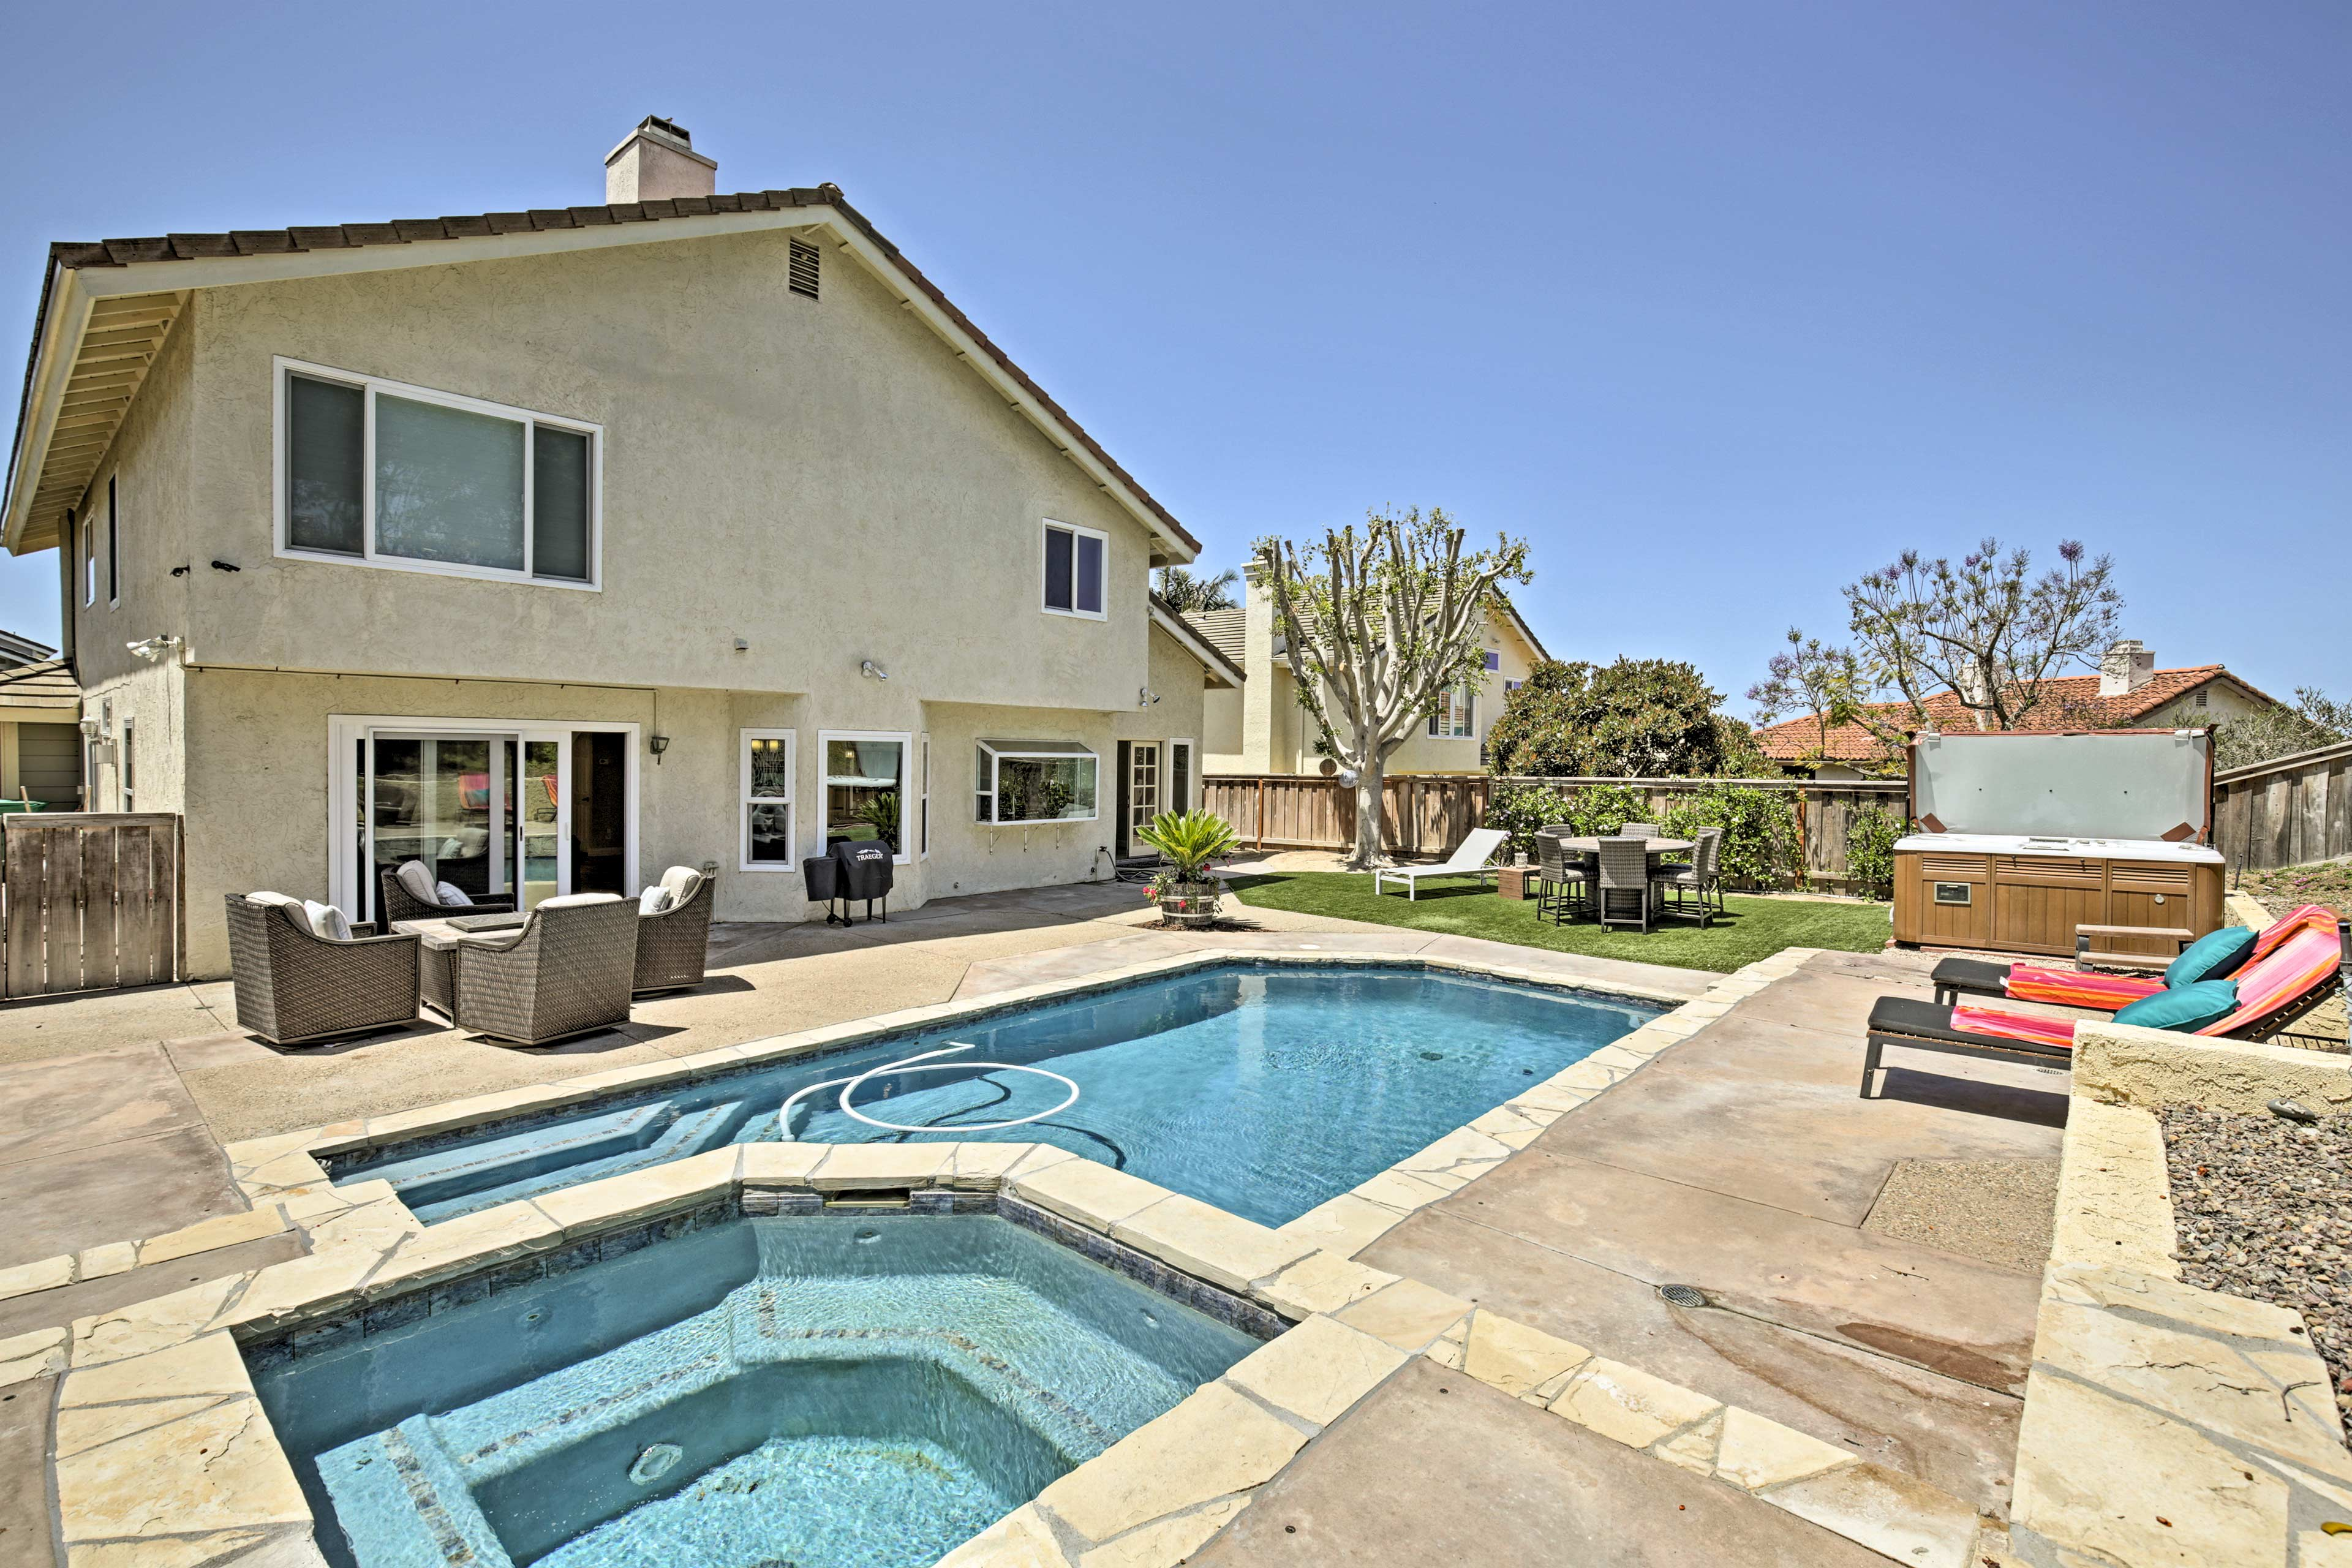 Stay in 'America's Finest City' at this 4-bed, 3.5-bath vacation rental house!